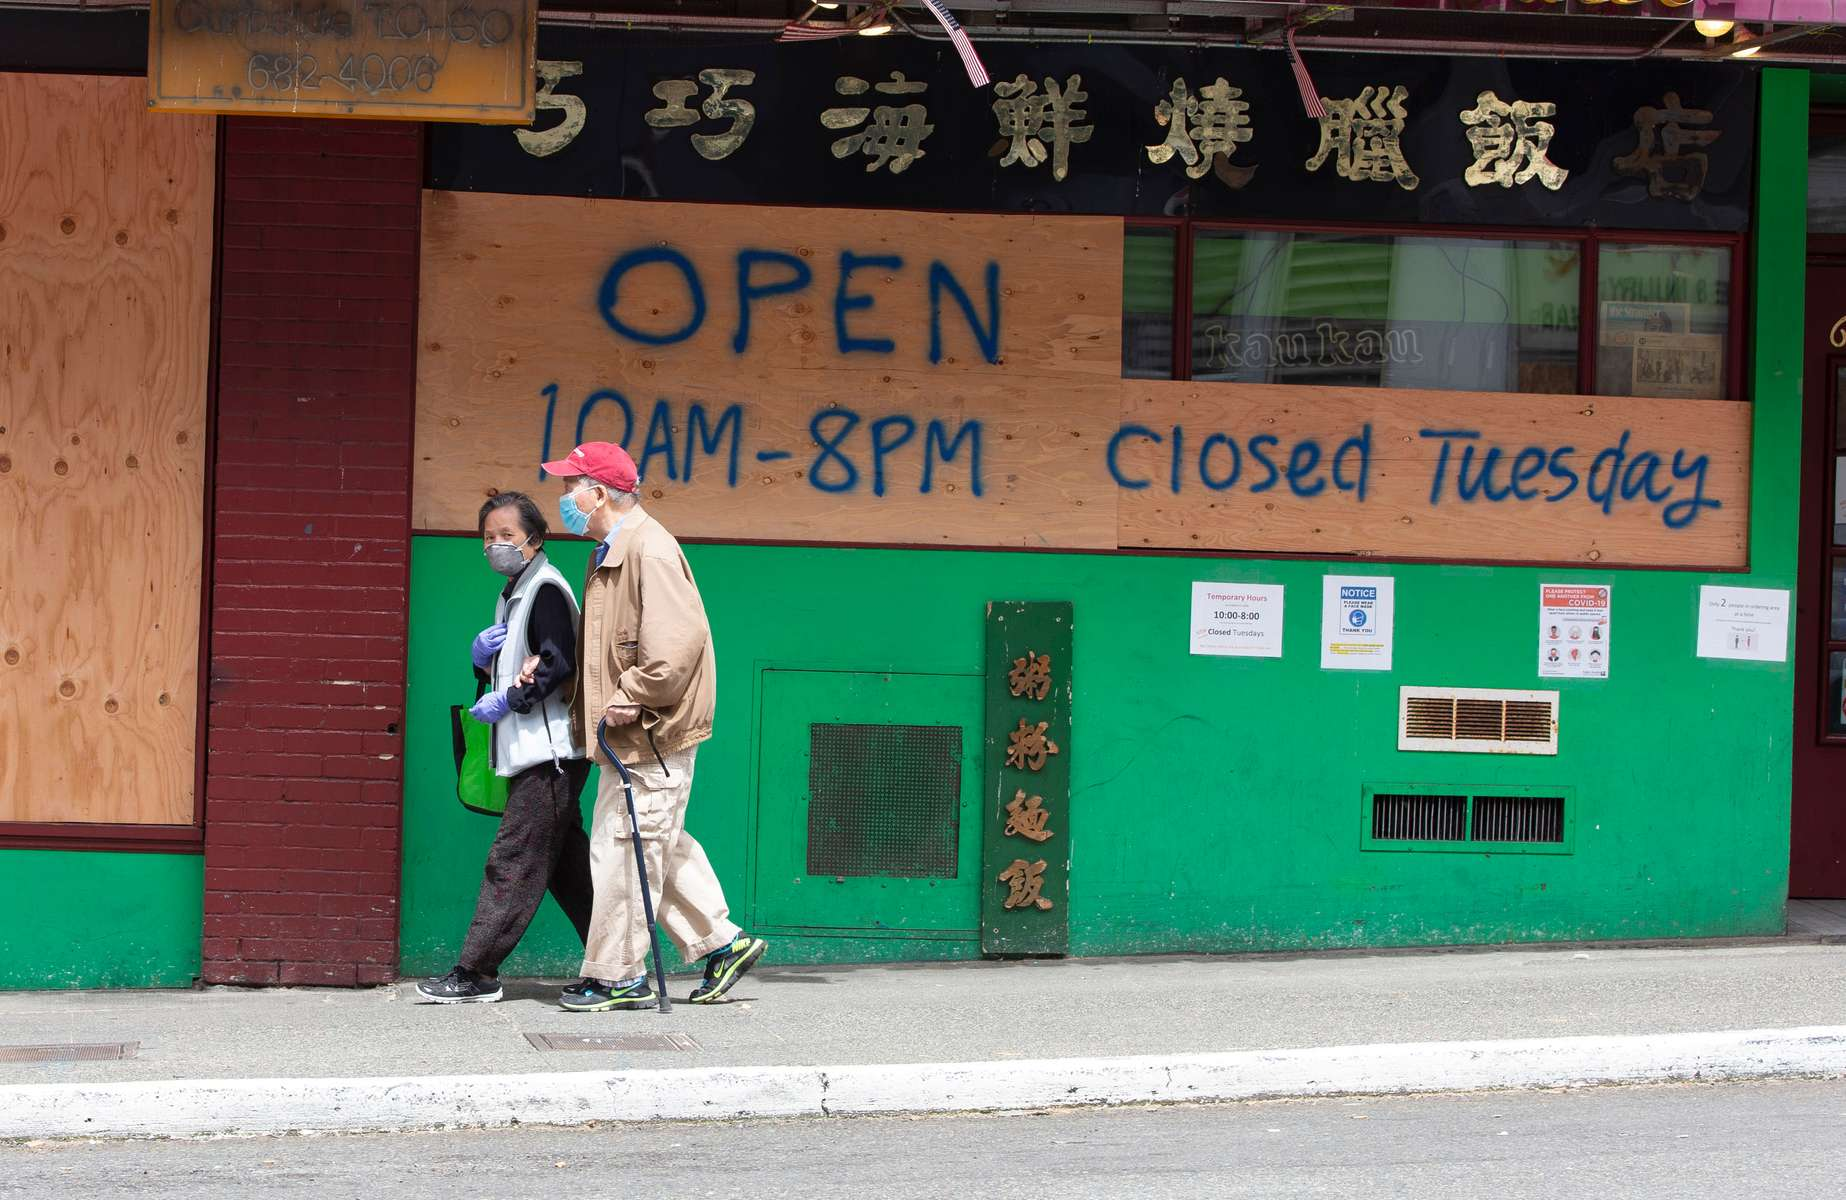 A couple walks past boarded up businesses in the Chinatown-International District in Seattle, WA on June 2, 2020. Businesses boarded up after a night of rioting swept up Jackson Street on May 29, 2020 and across the city the past couple of days. Protests around the country became violent after the killing of George Floyd, a black man in Minneapolis, who died while in the custody of white police officers, one of whom held him down with his knee. (Photo by Karen Ducey)